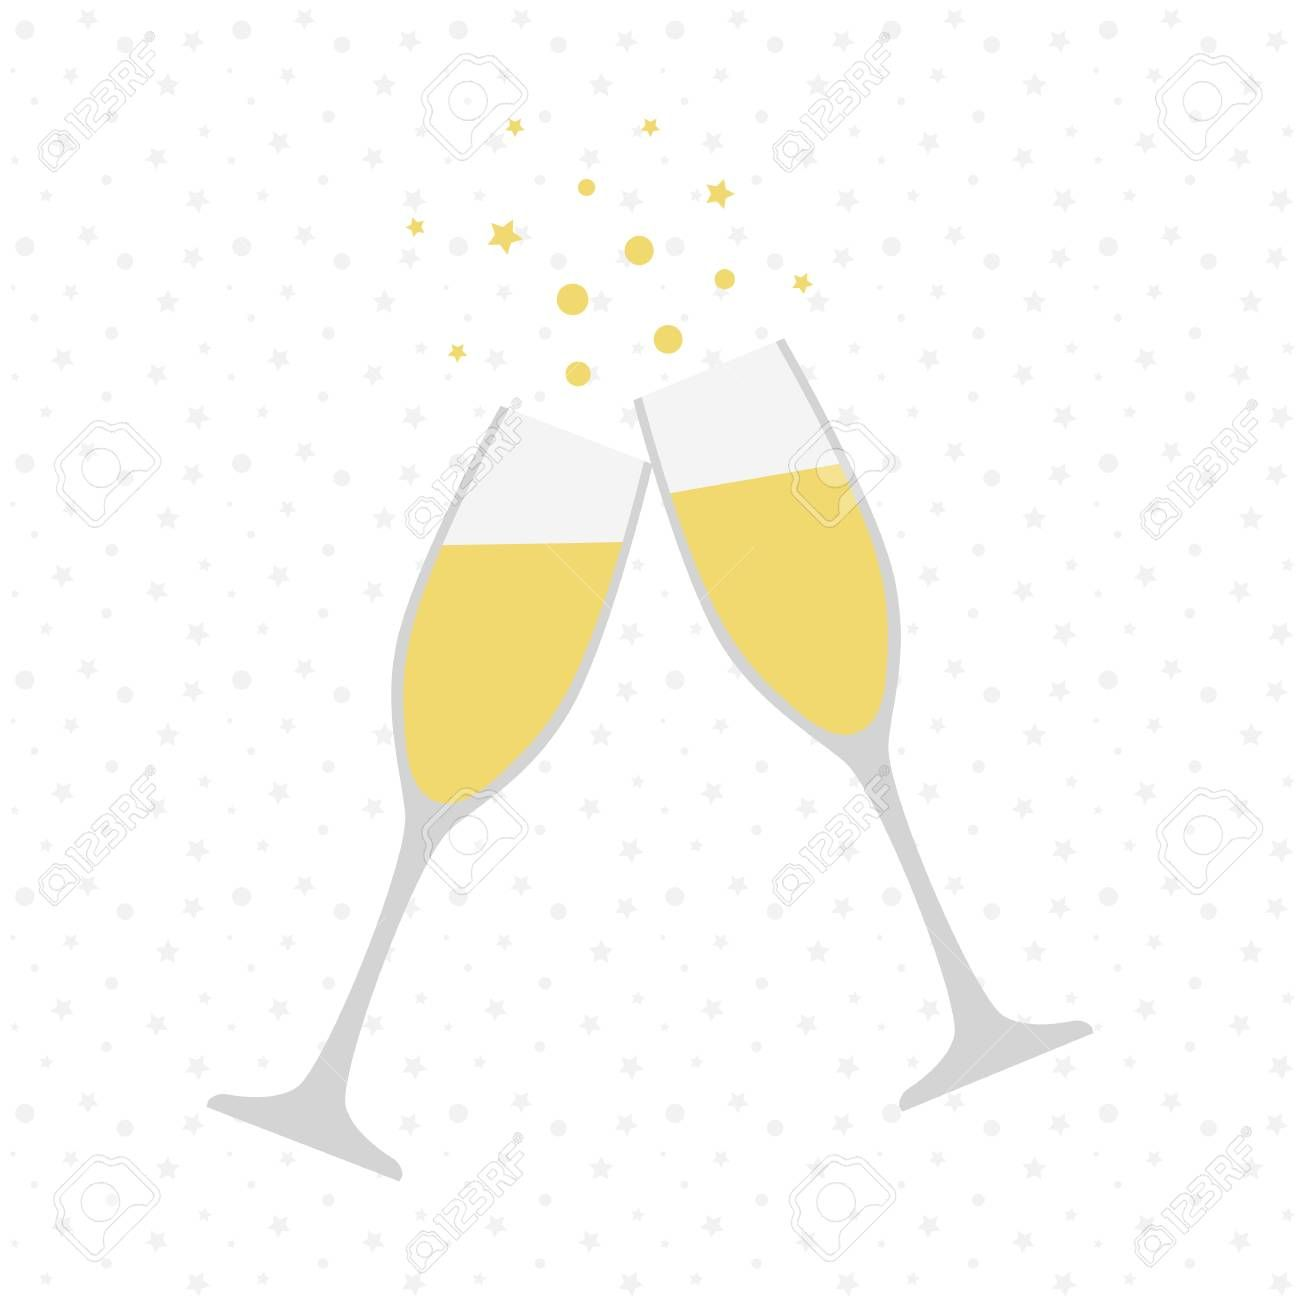 Two champagne glasses. Cheers. Celebration. Holiday toast.